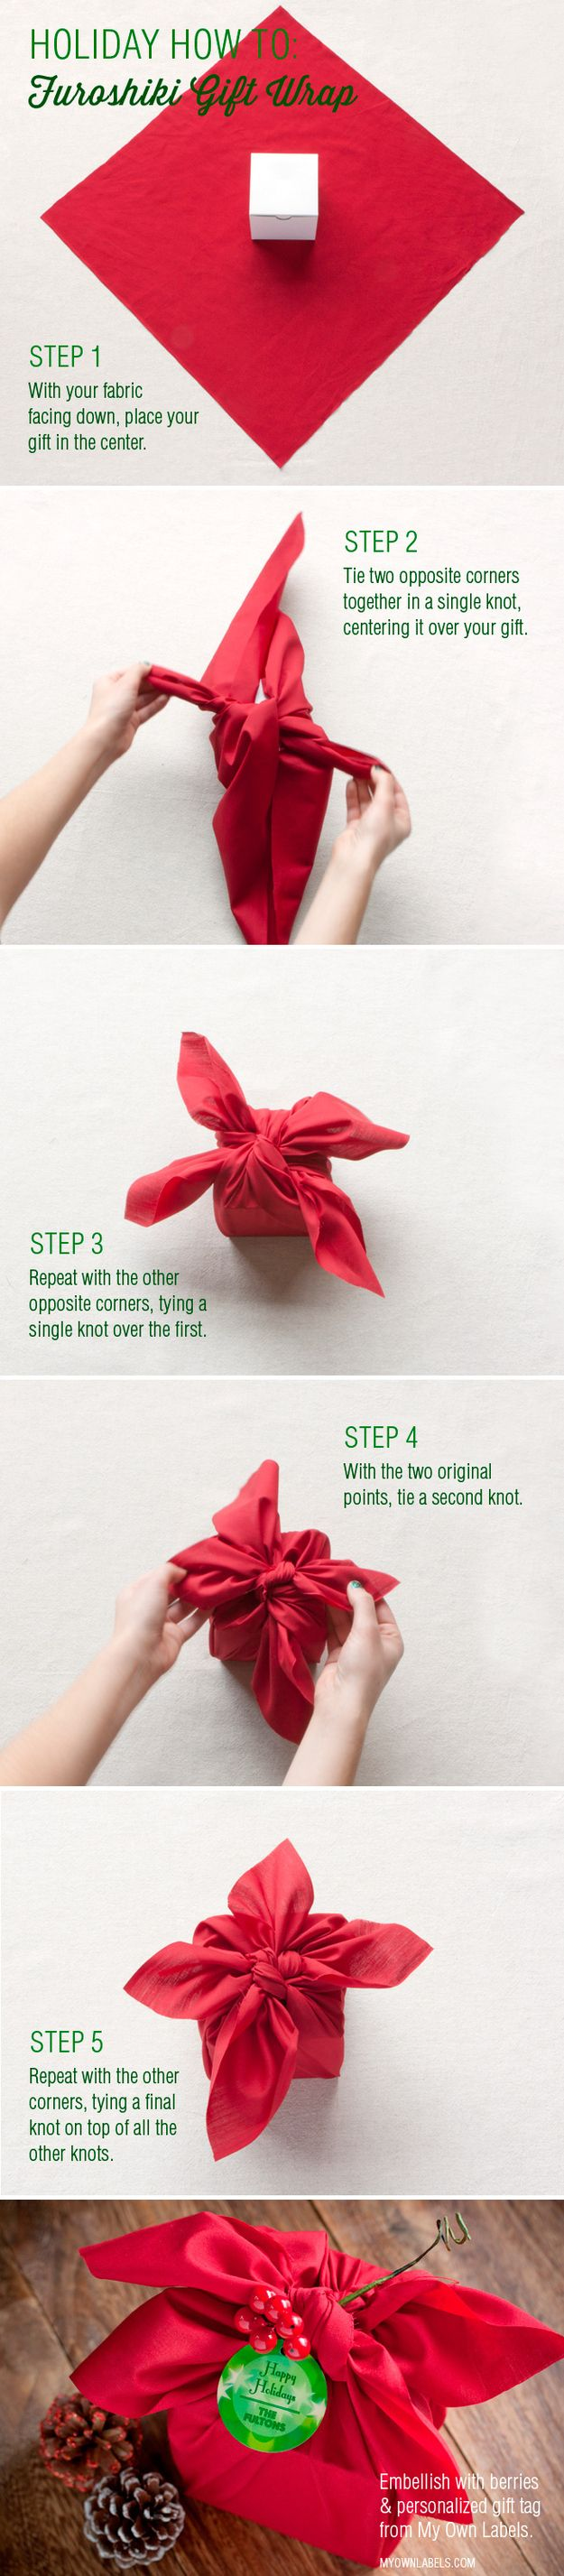 Wrap with fabric. | 23 Tricks To Take The Stress Out Of Wrapping Gifts